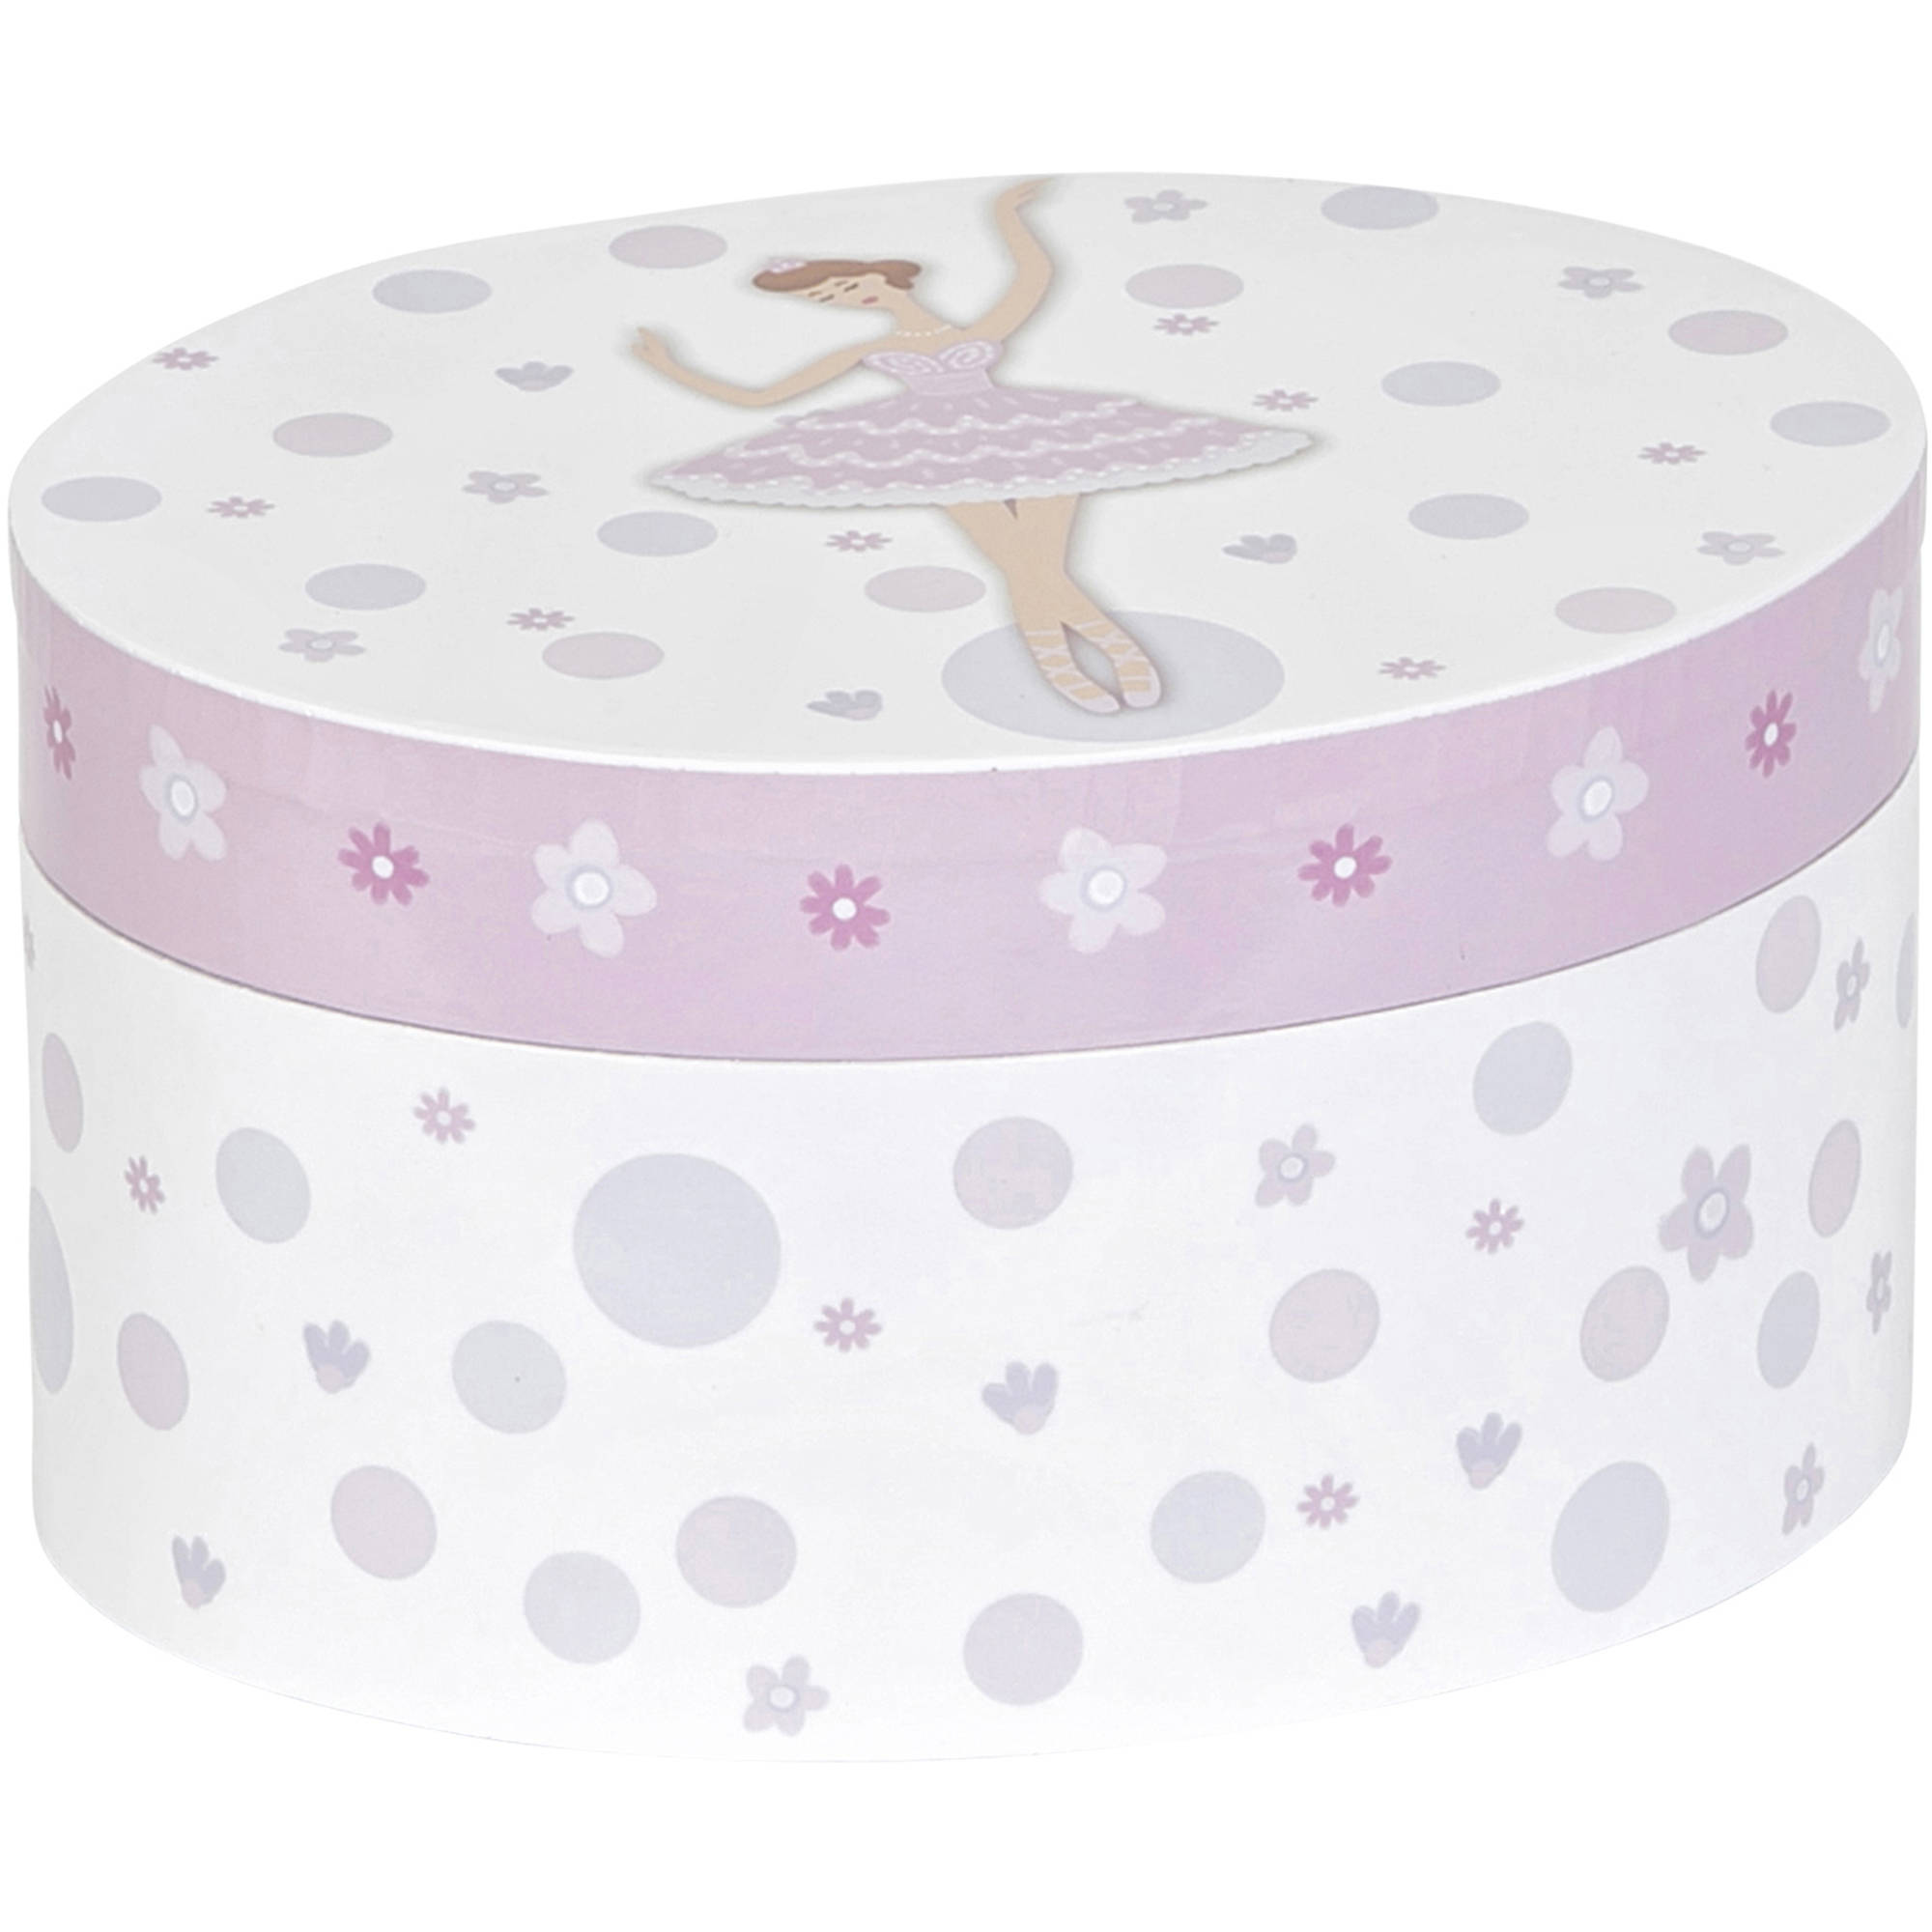 Kendra Girl's Musical Ballerina Jewelry Box